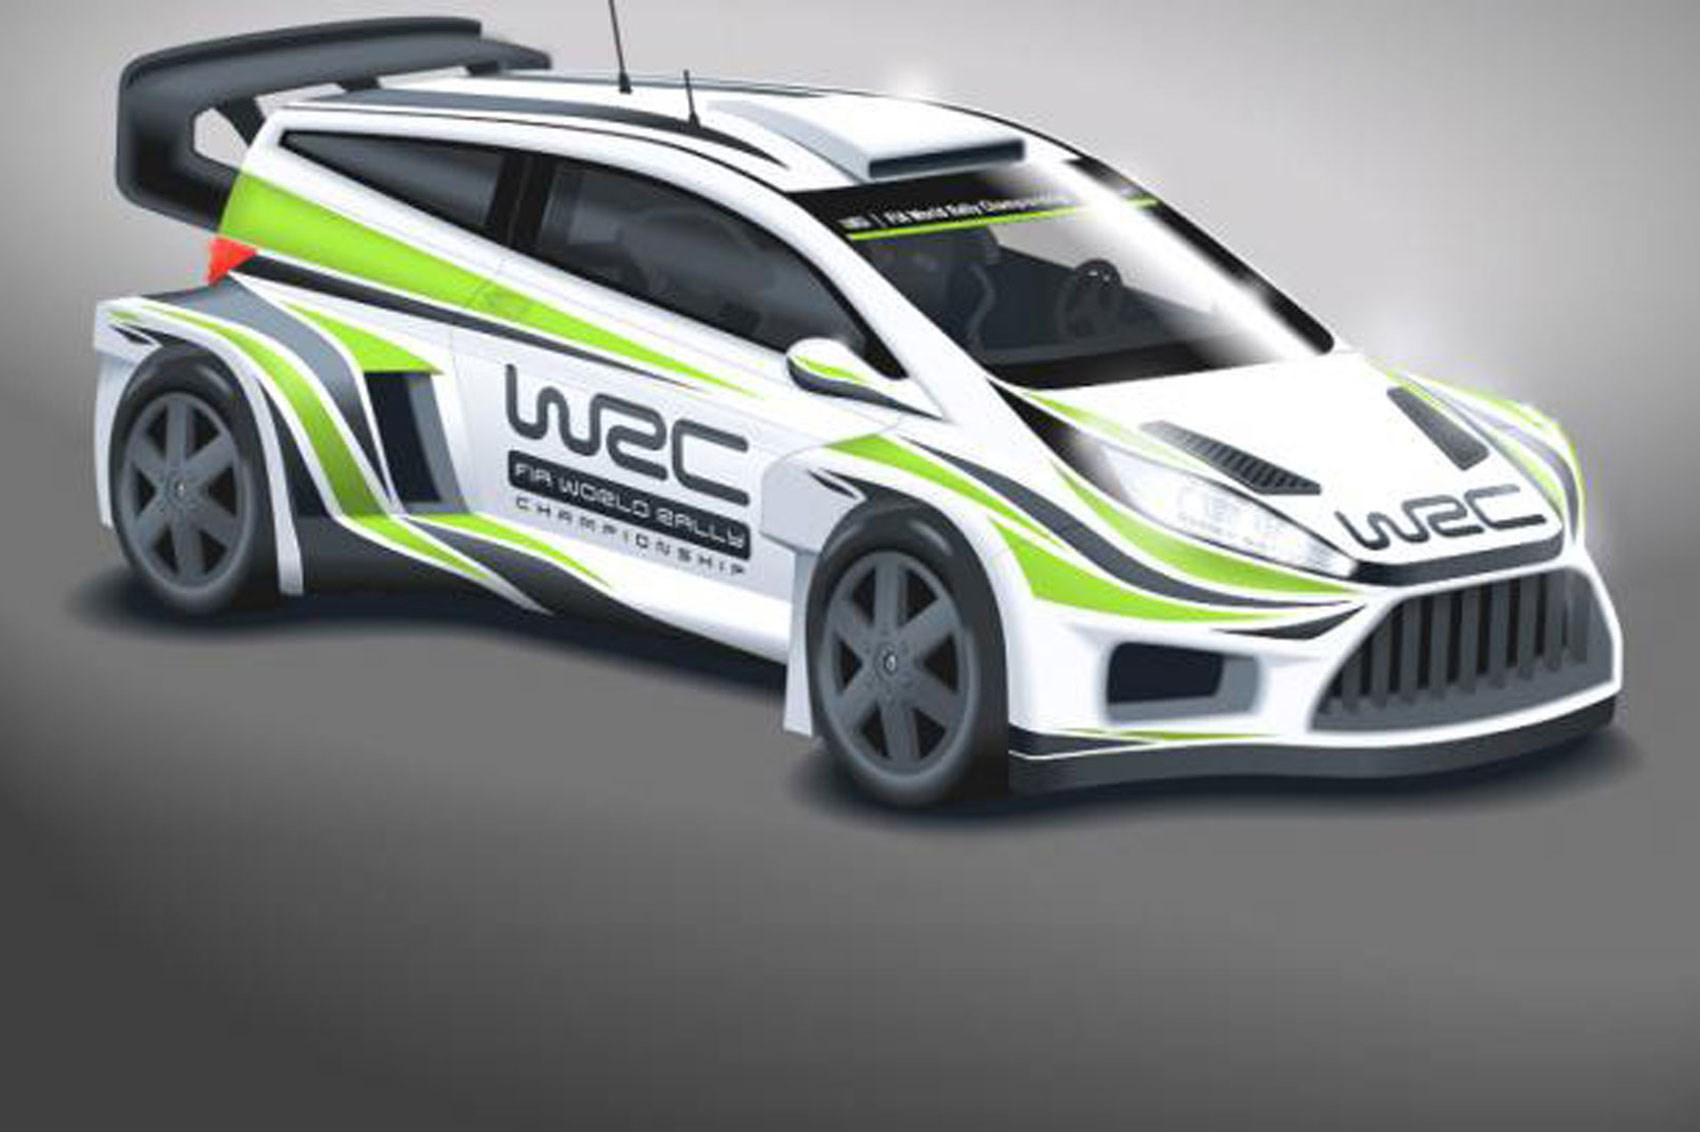 Ultrablogus  Terrific Wild New Look For Wrc Cars In  By Car Magazine With Entrancing Wrc Cars Will Get Wider Bodies Bigger Wings And More Power For  With Breathtaking Md Interior Also Bmw M Interior Parts In Addition Interior Of Boeing  And Honda Civic Interior Parts As Well As Sliding Interior Doors Ikea Additionally Air Force  Interior From Carmagazinecouk With Ultrablogus  Entrancing Wild New Look For Wrc Cars In  By Car Magazine With Breathtaking Wrc Cars Will Get Wider Bodies Bigger Wings And More Power For  And Terrific Md Interior Also Bmw M Interior Parts In Addition Interior Of Boeing  From Carmagazinecouk